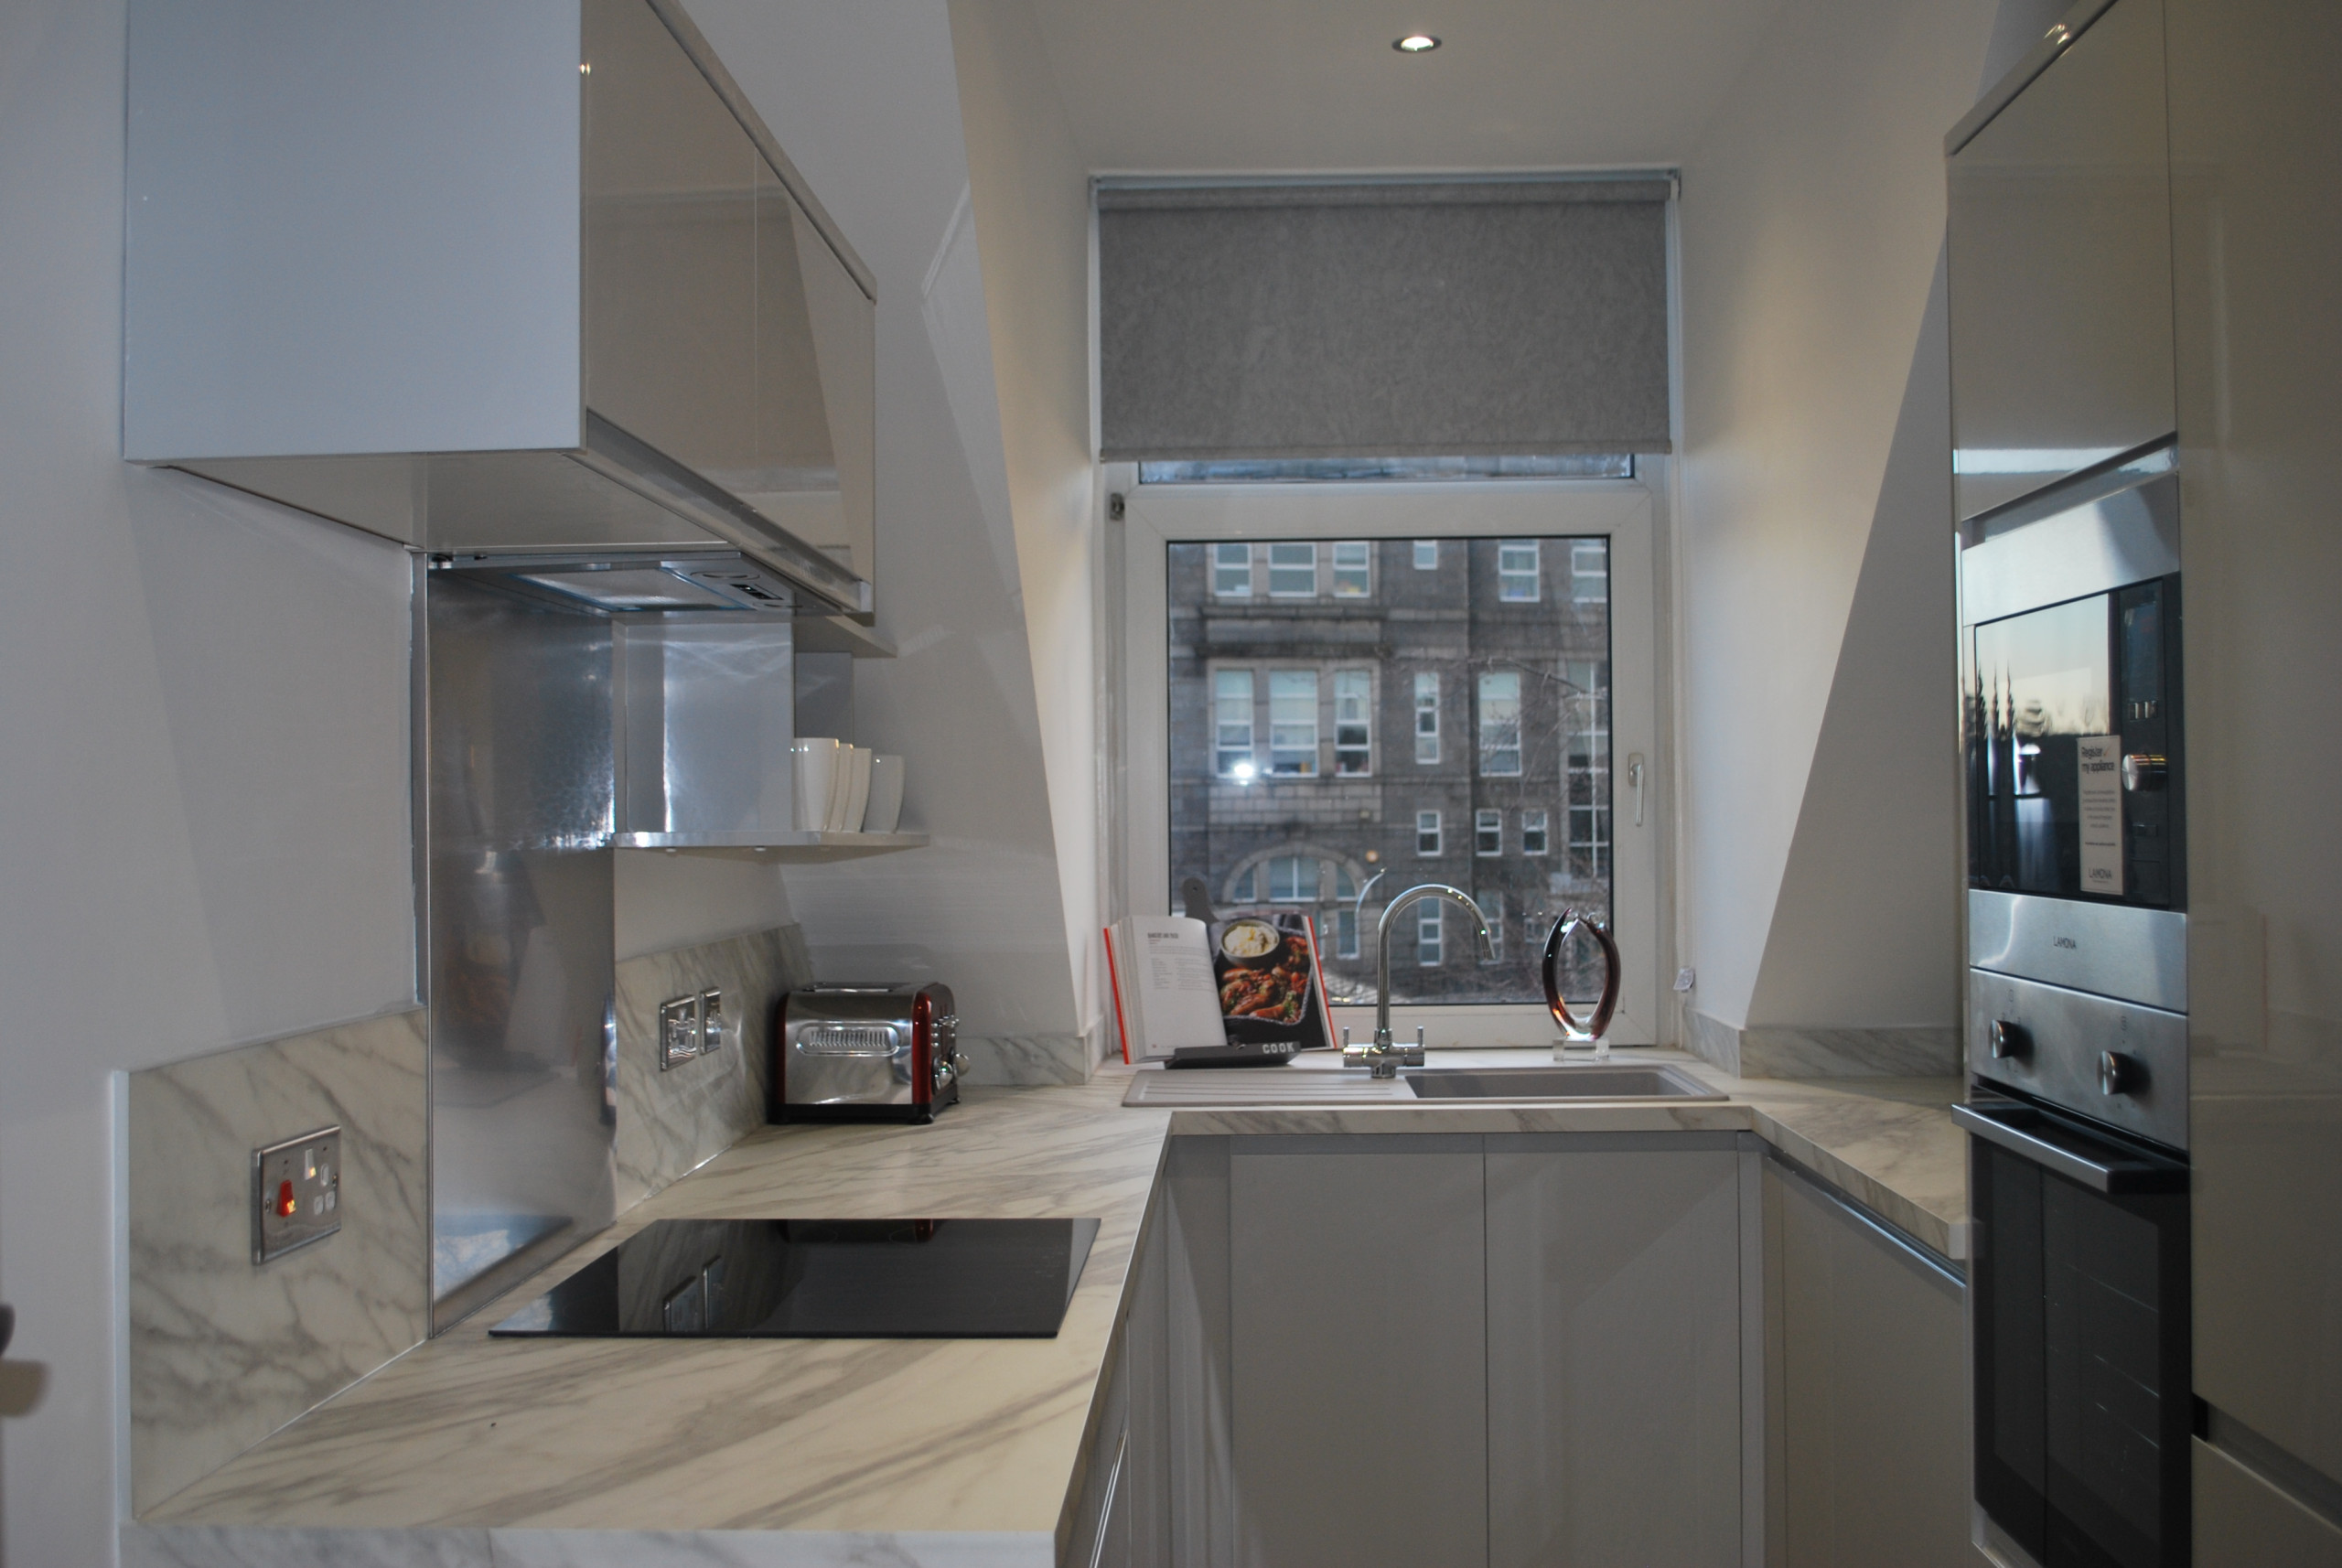 Design and renovation project management of rental property.